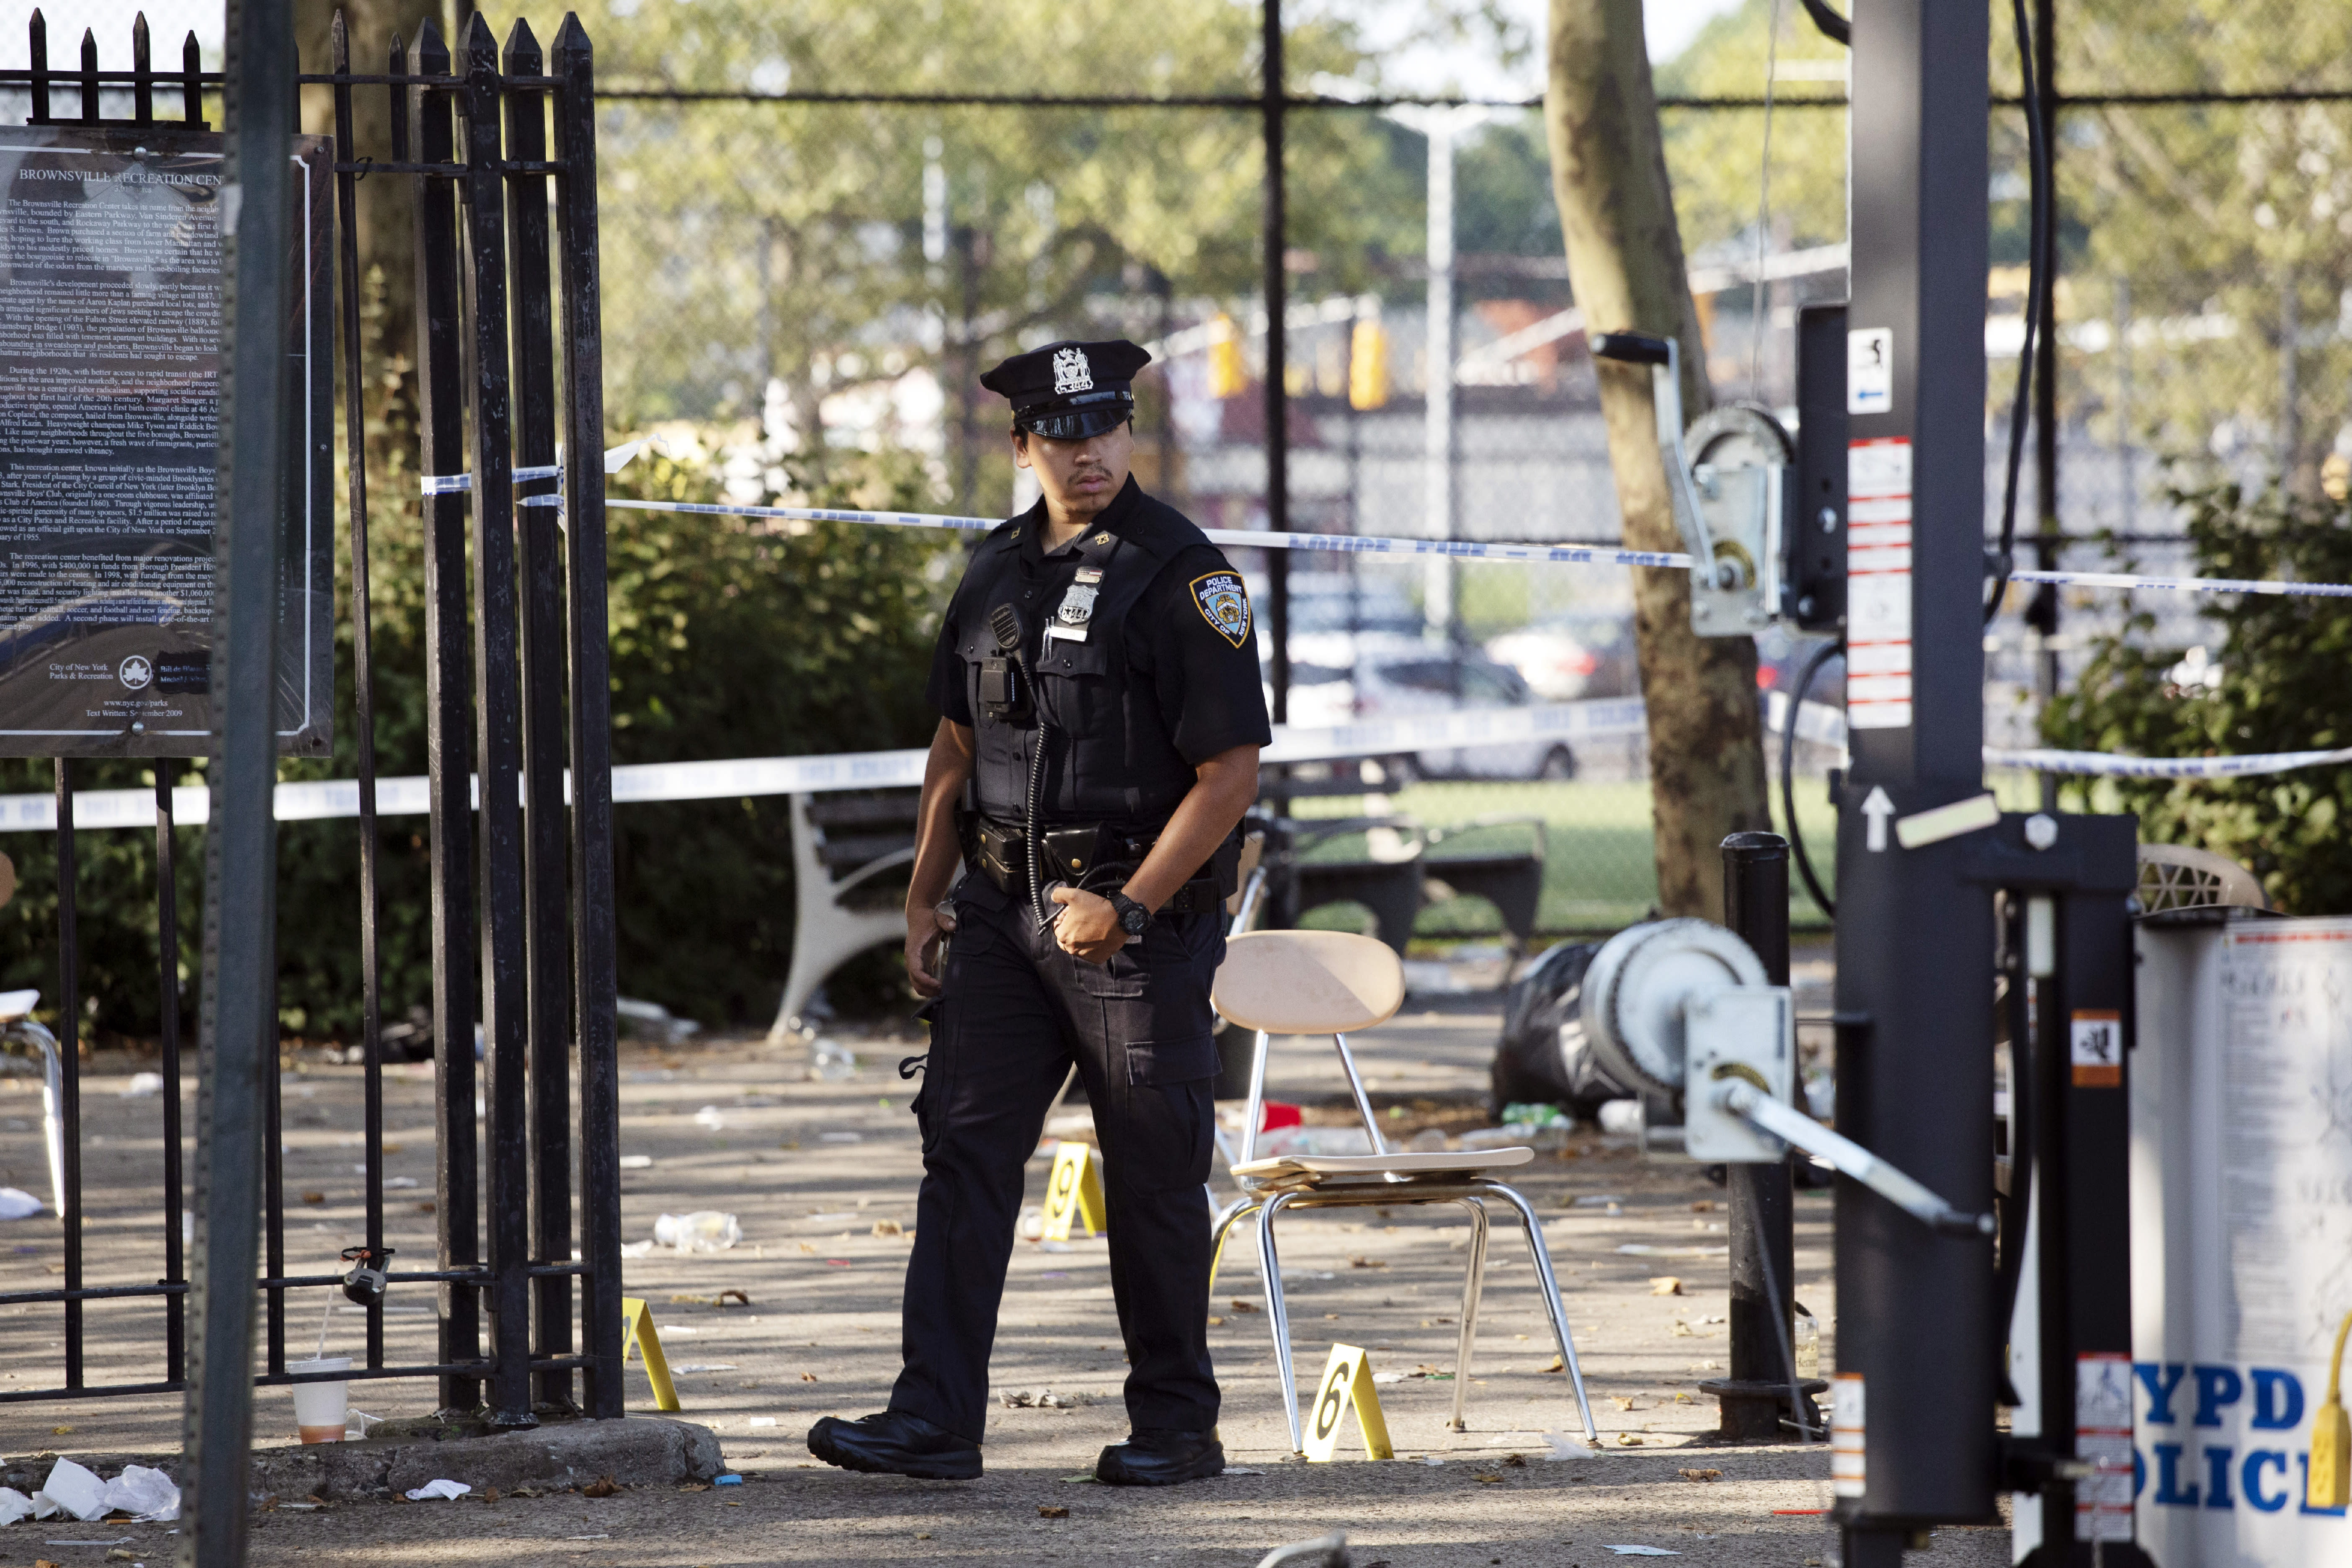 Block Party Shootout May Have Been Gang Related Police Say